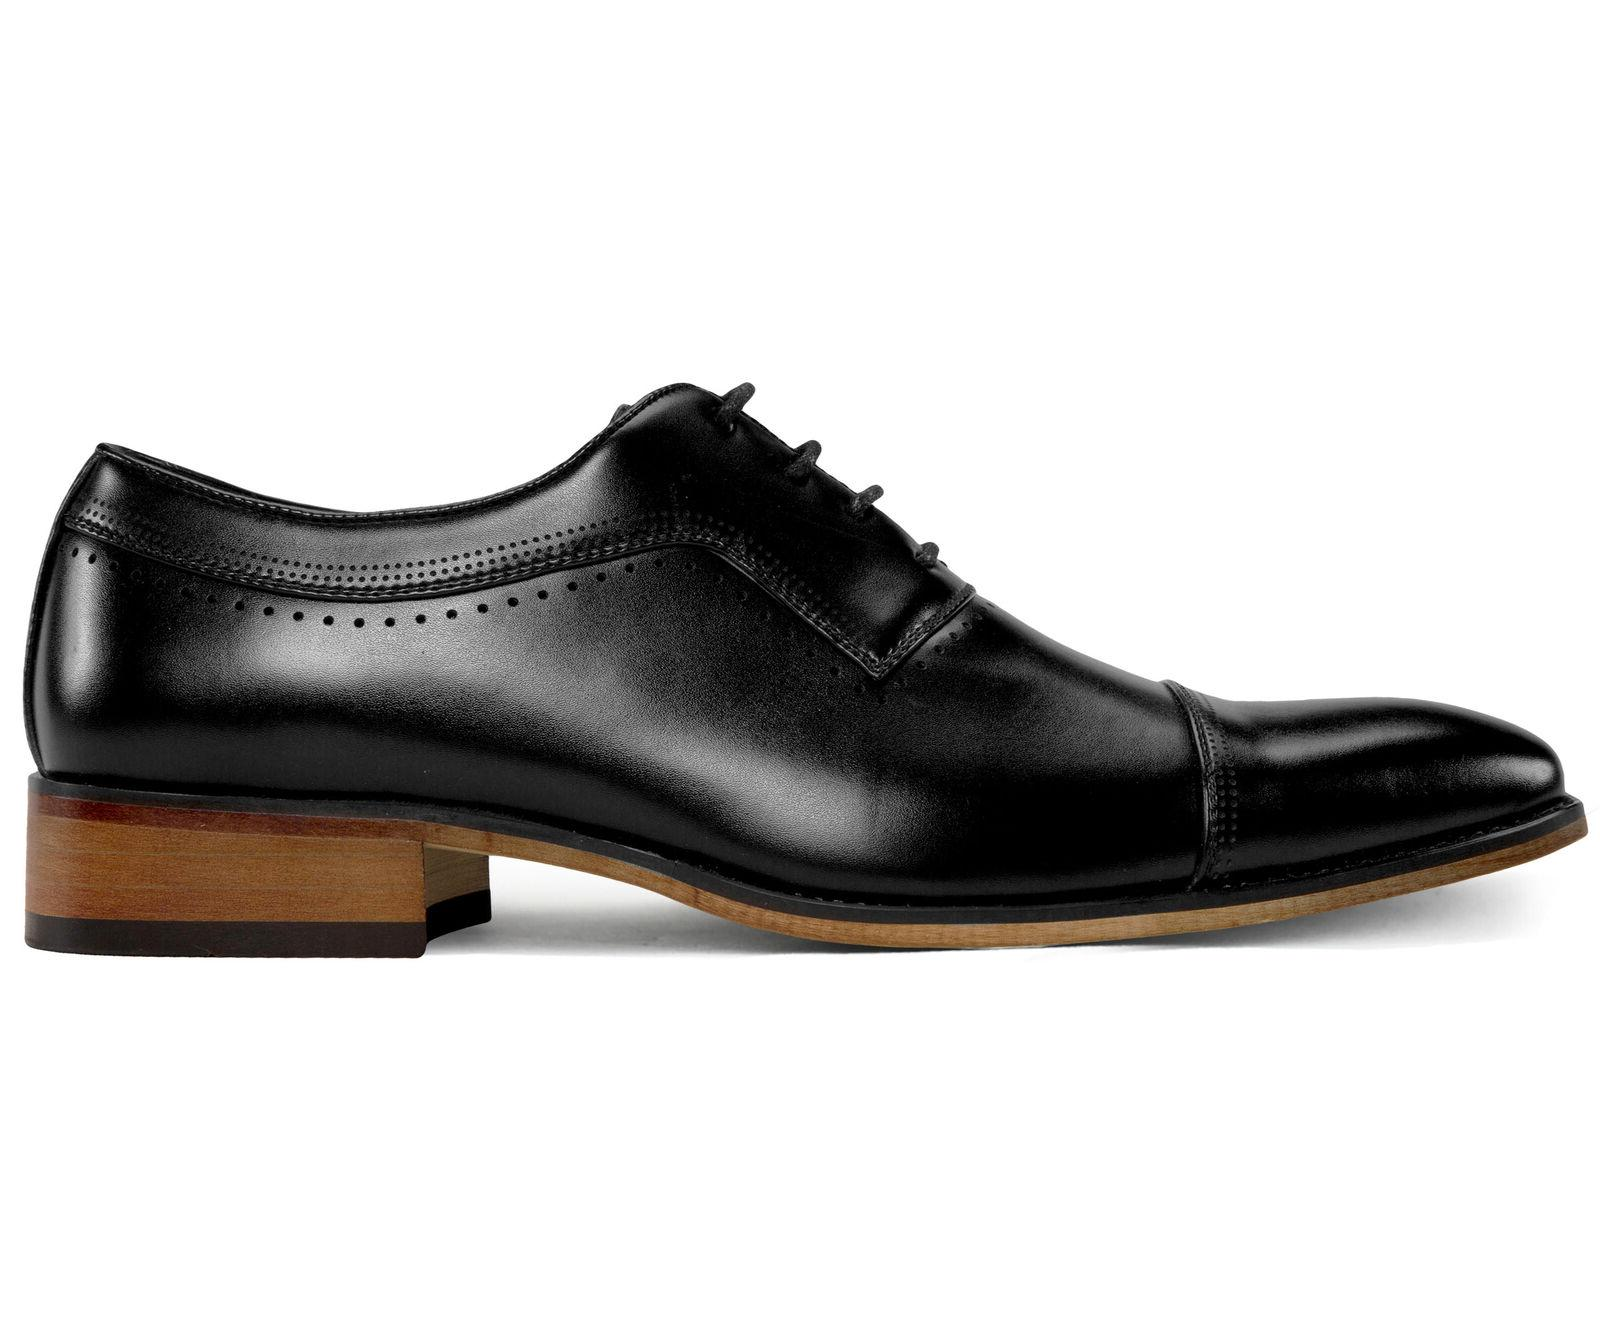 Mens Dress Shoes Oxford - Shoes with